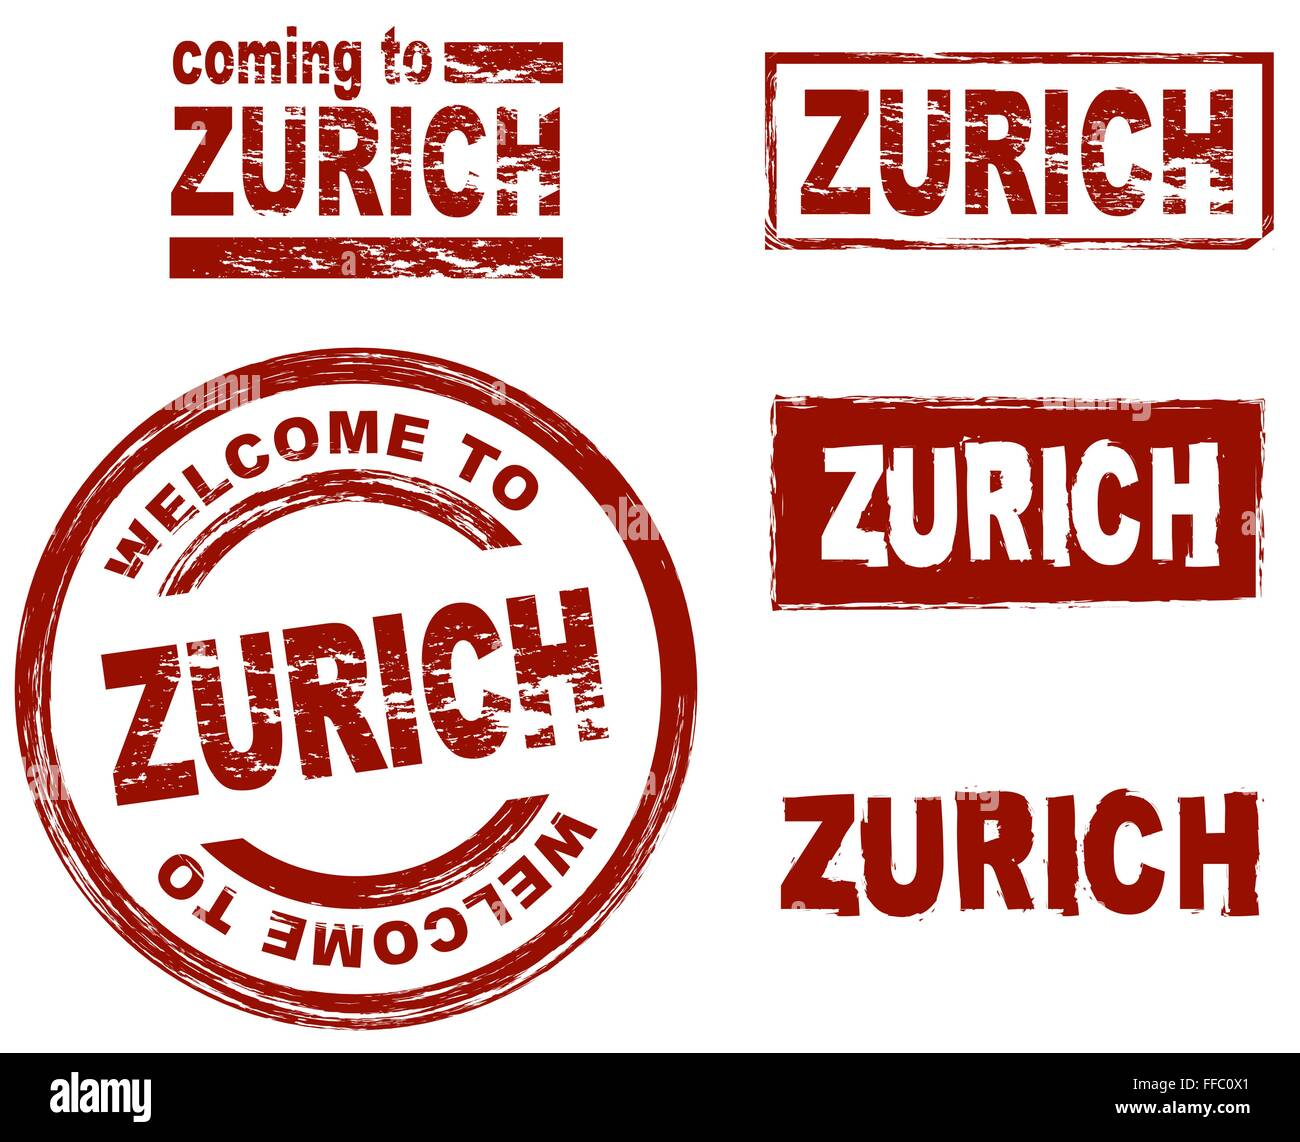 Set of stylized ink stamps showing the city of Zurich - Stock Vector